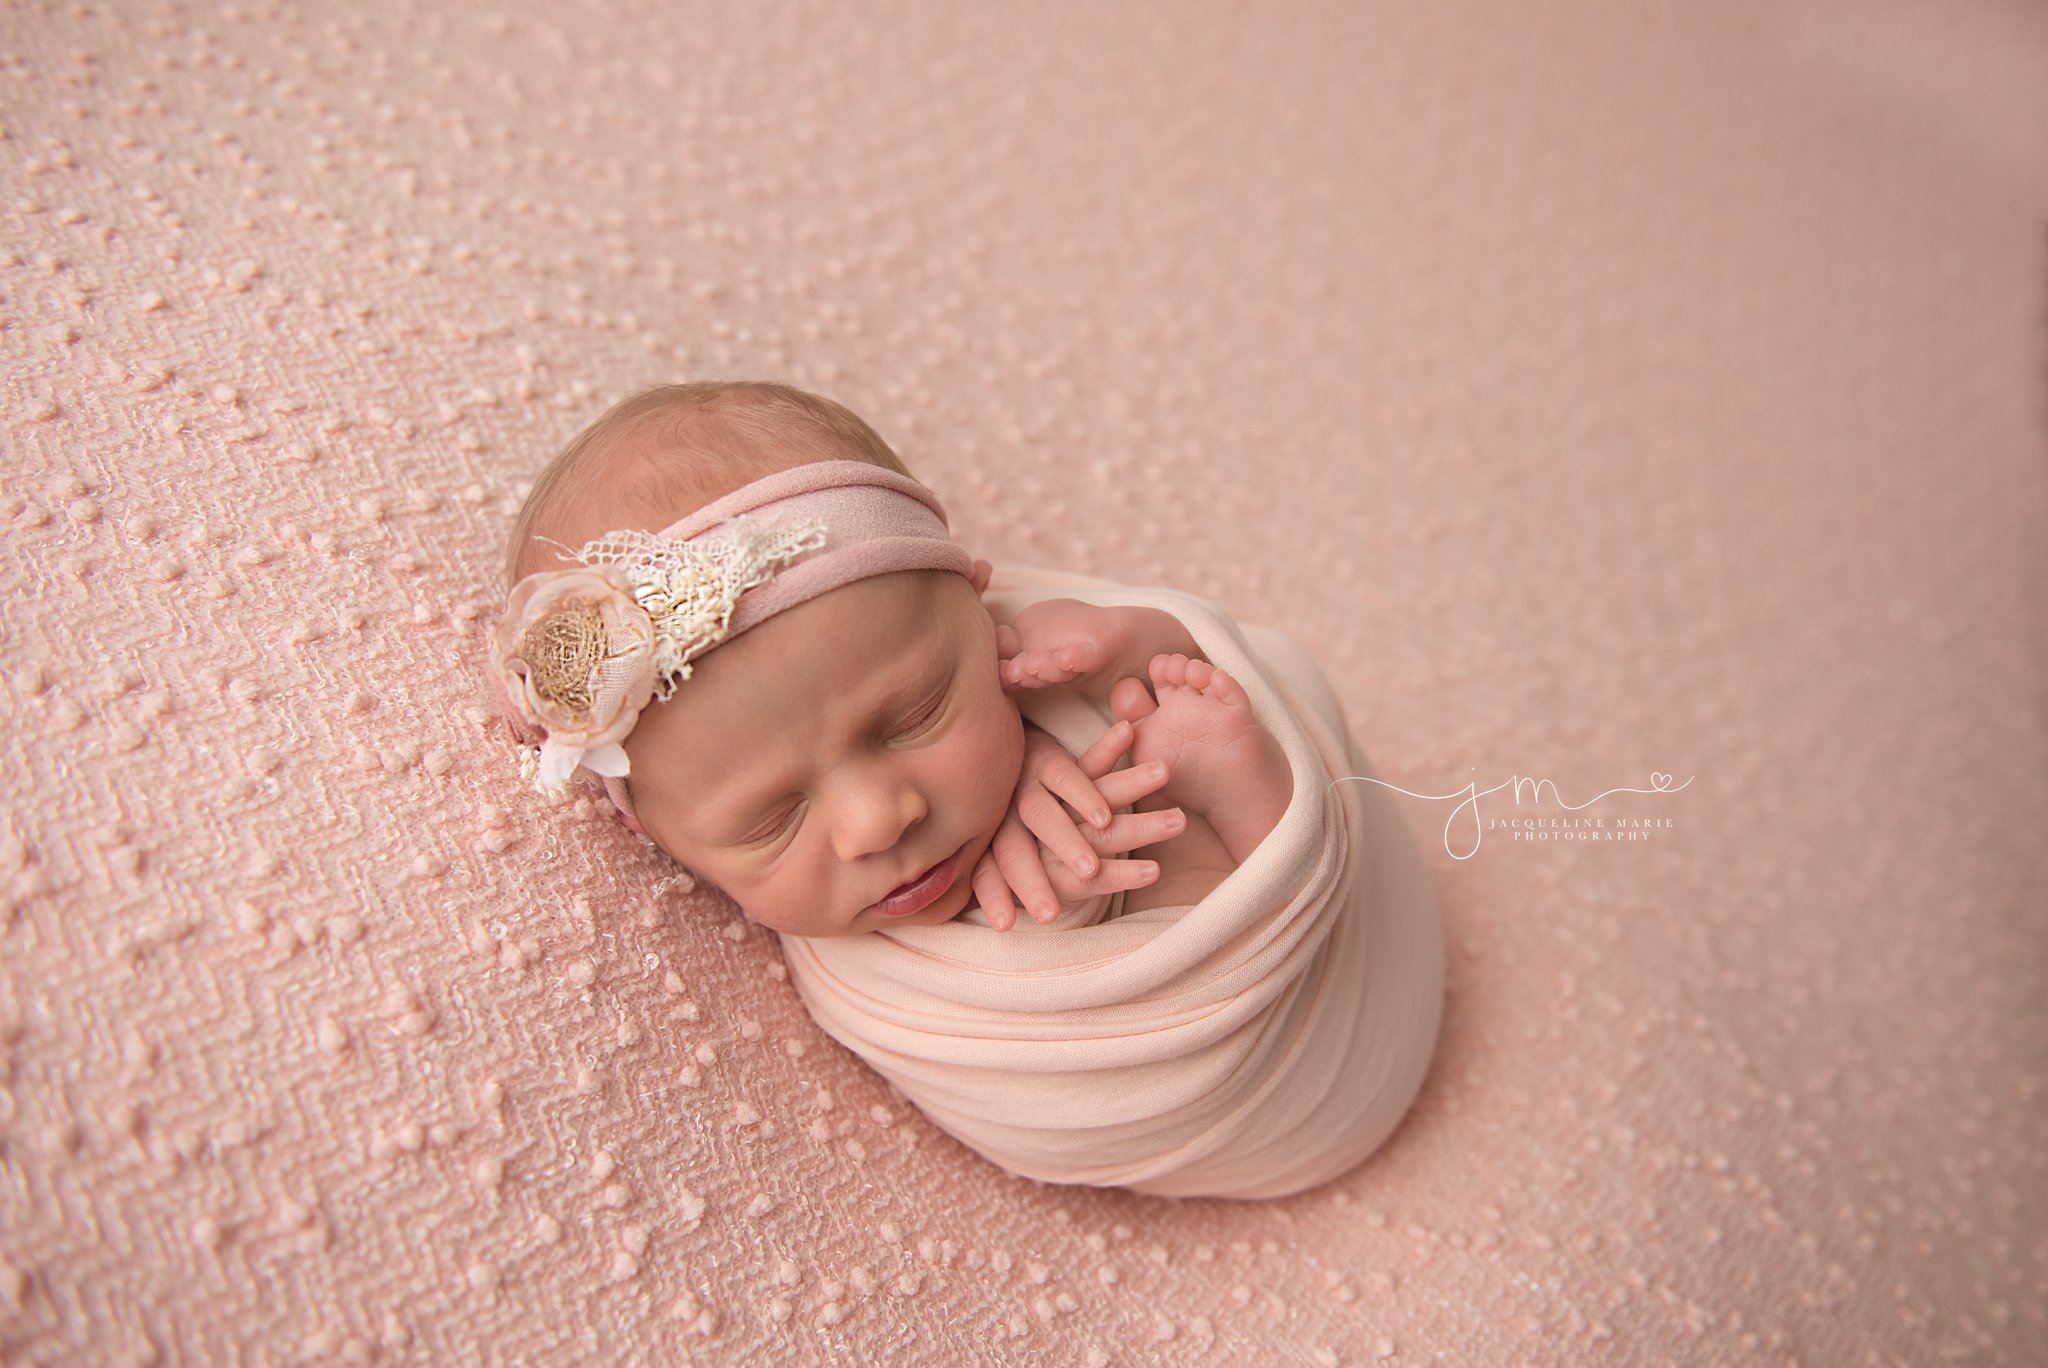 columbus ohio newborn photographer features image of newborn baby girl swaddled in pink wrap and matching headband